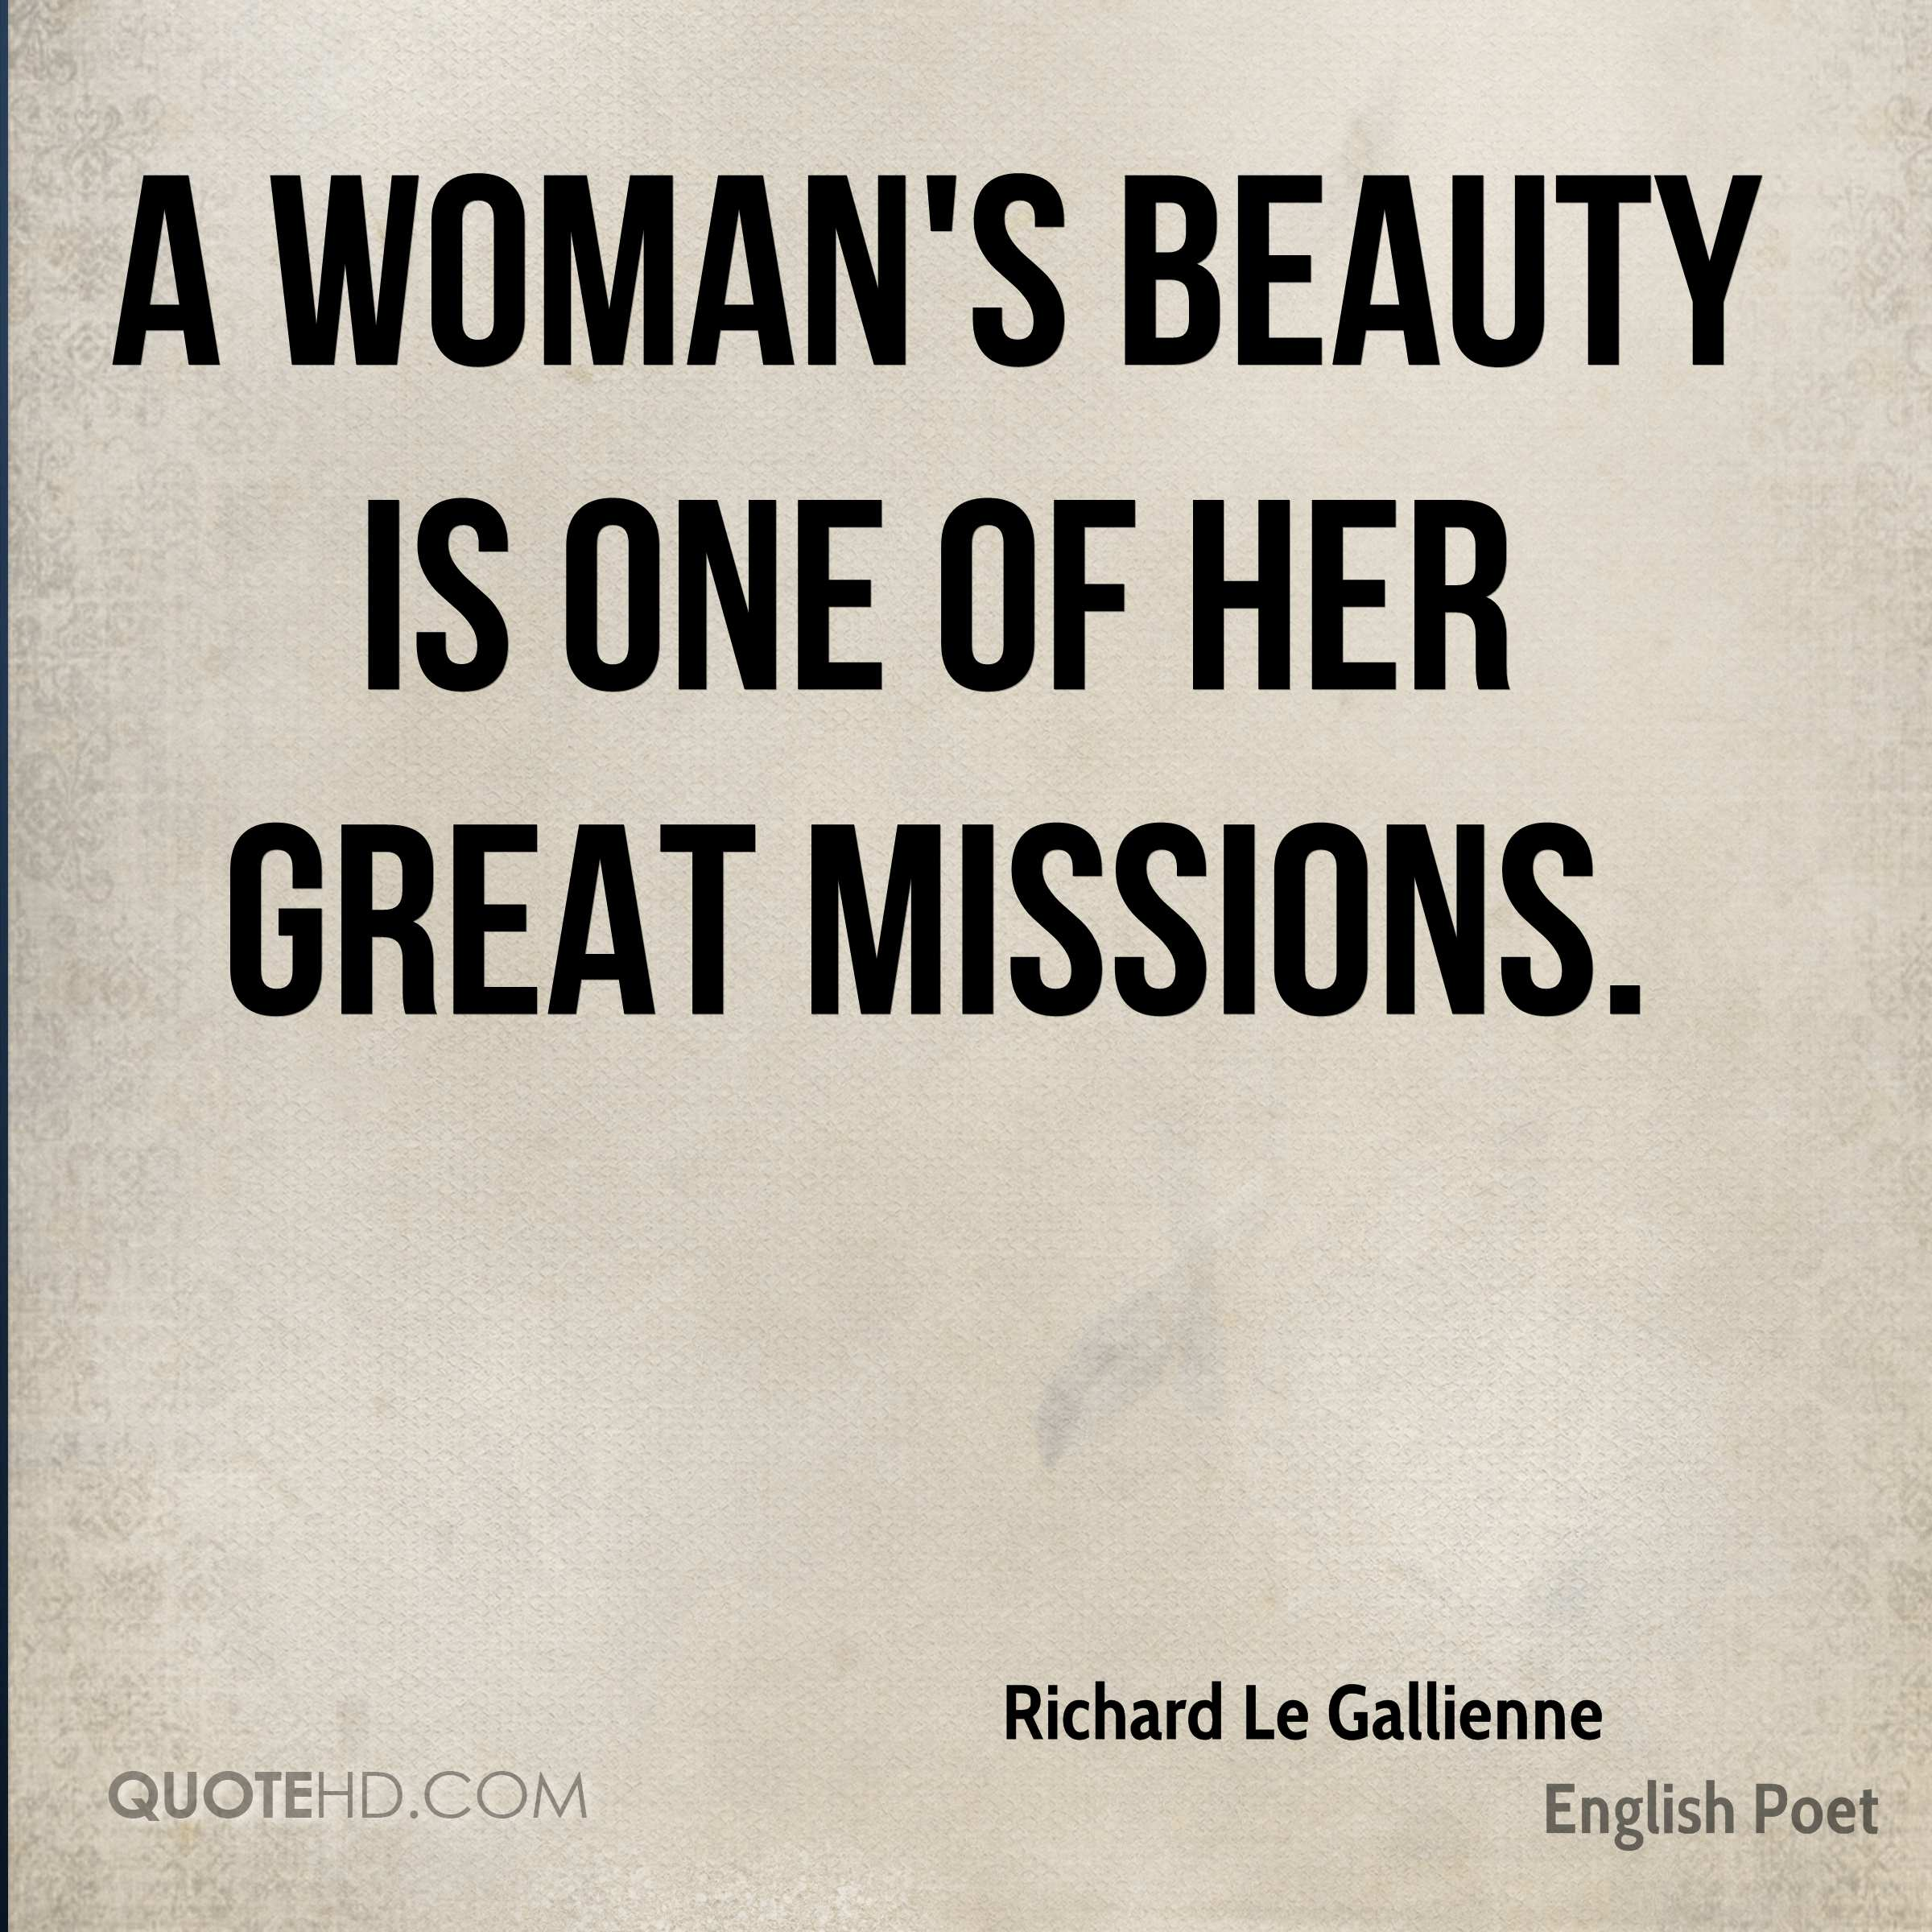 Richard Le Gallienne Beauty Quotes | QuoteHD